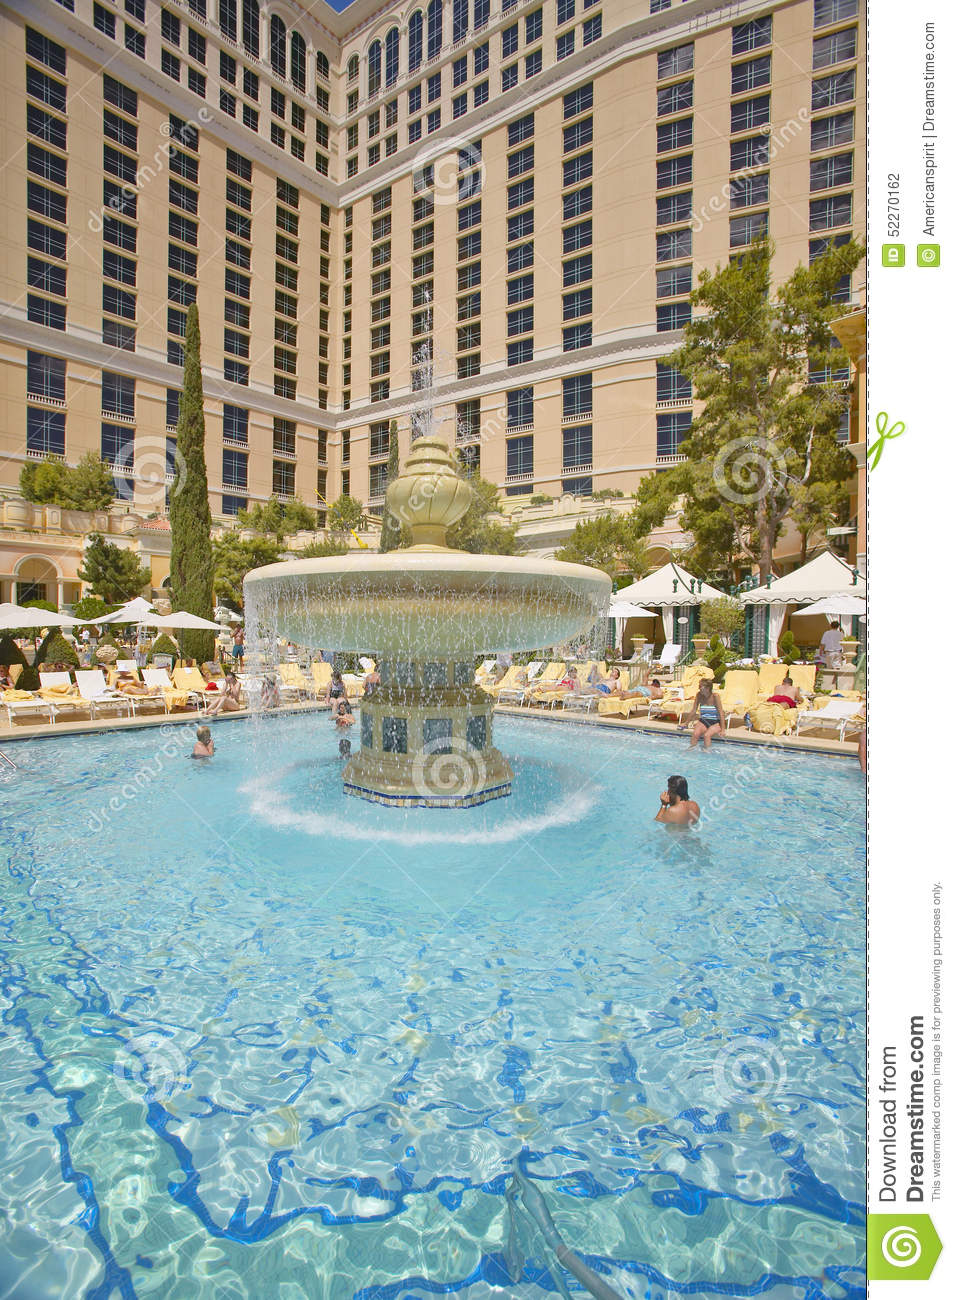 Large swimming pool with swimmers at bellagio casino in las vegas nv editorial photography - Las vegas swimming pools ...